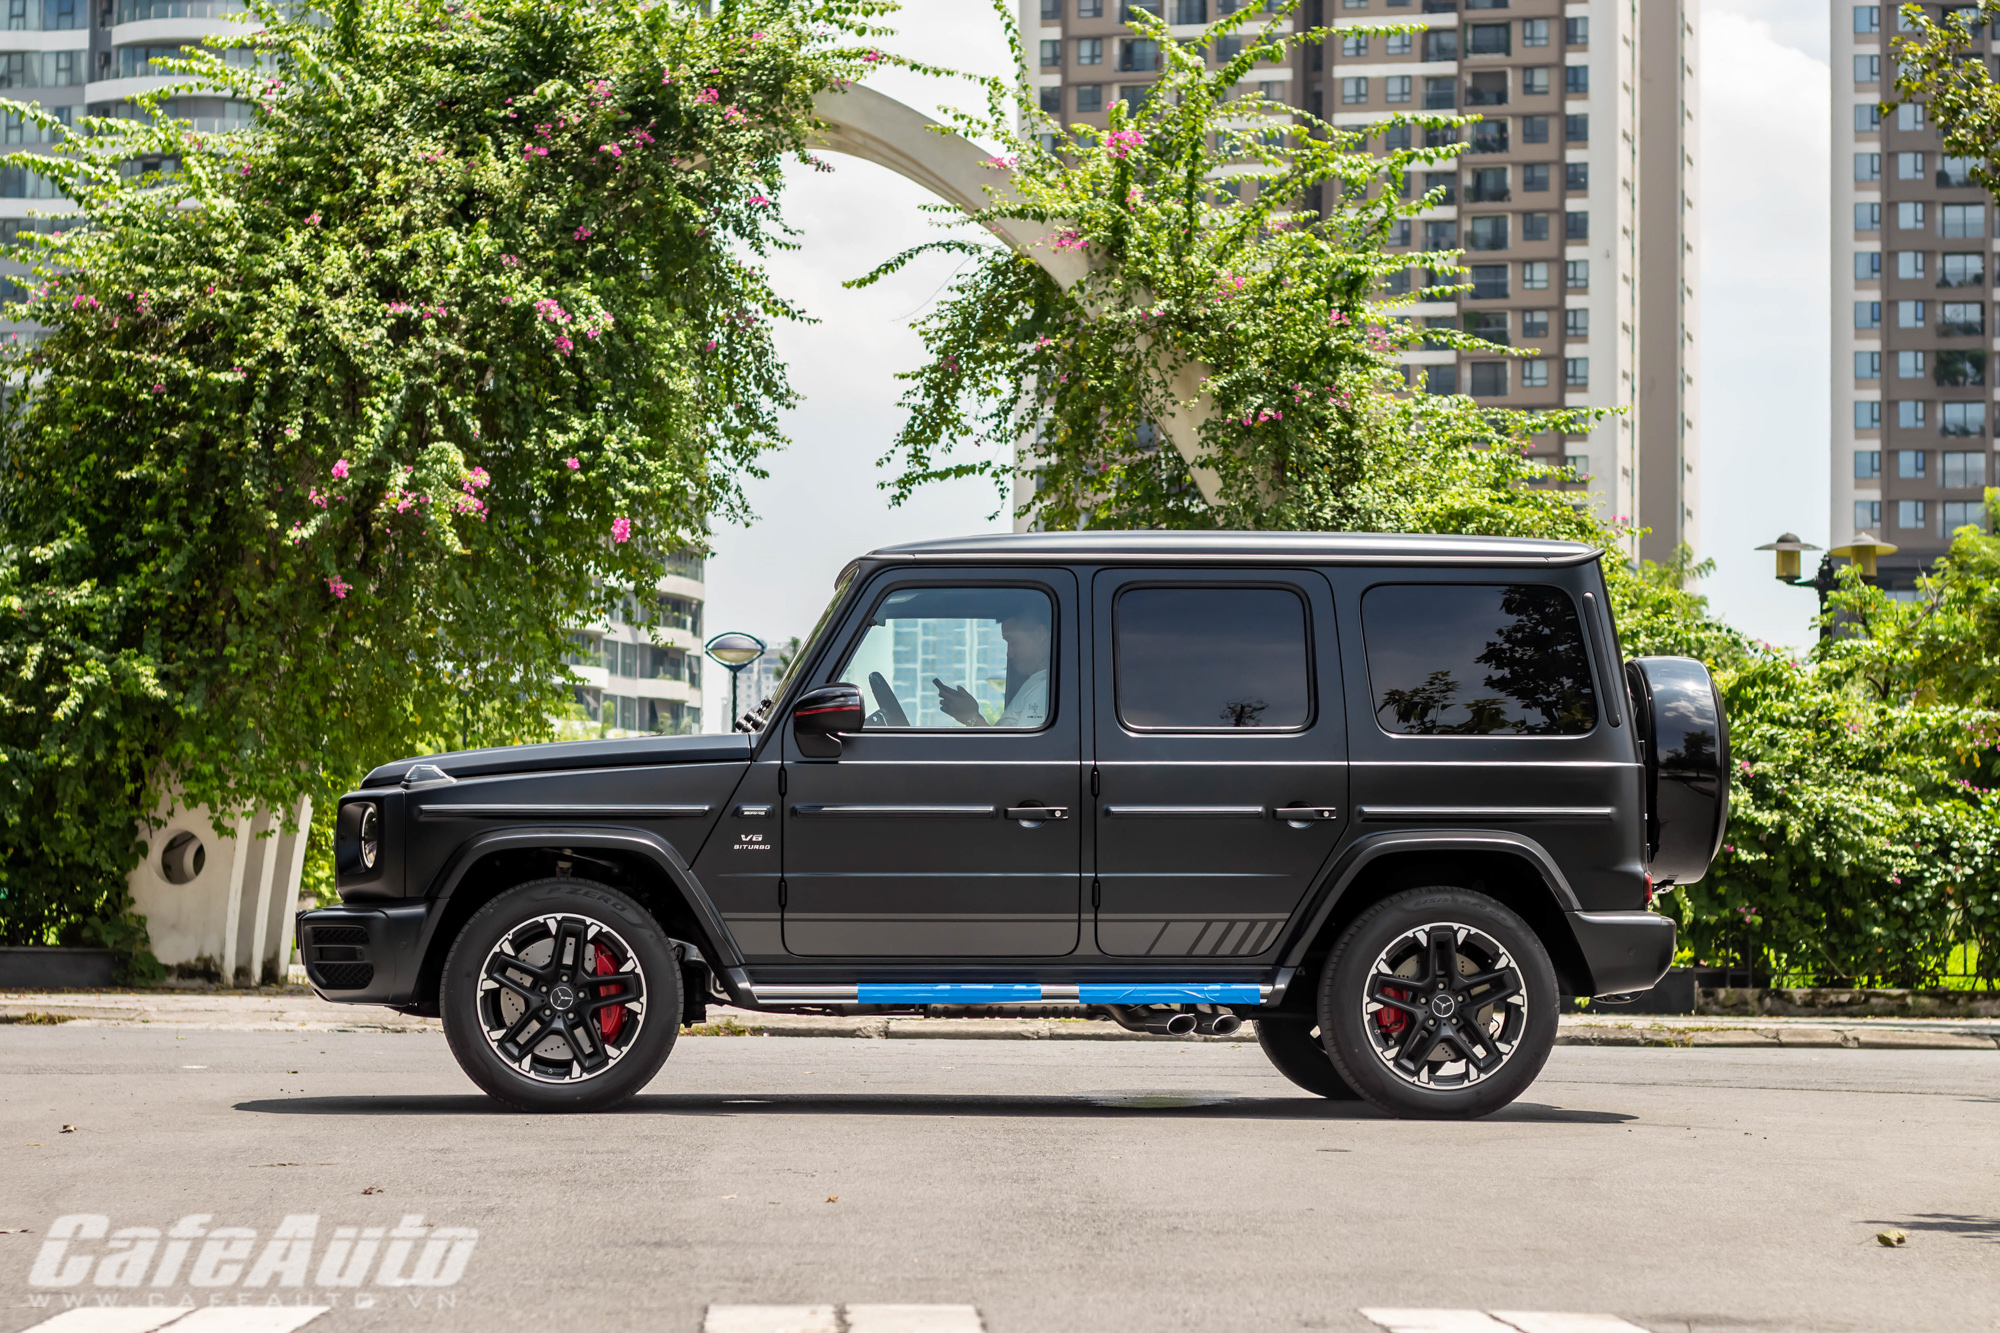 MercedesG63TrailPackage-cafeautovn-31